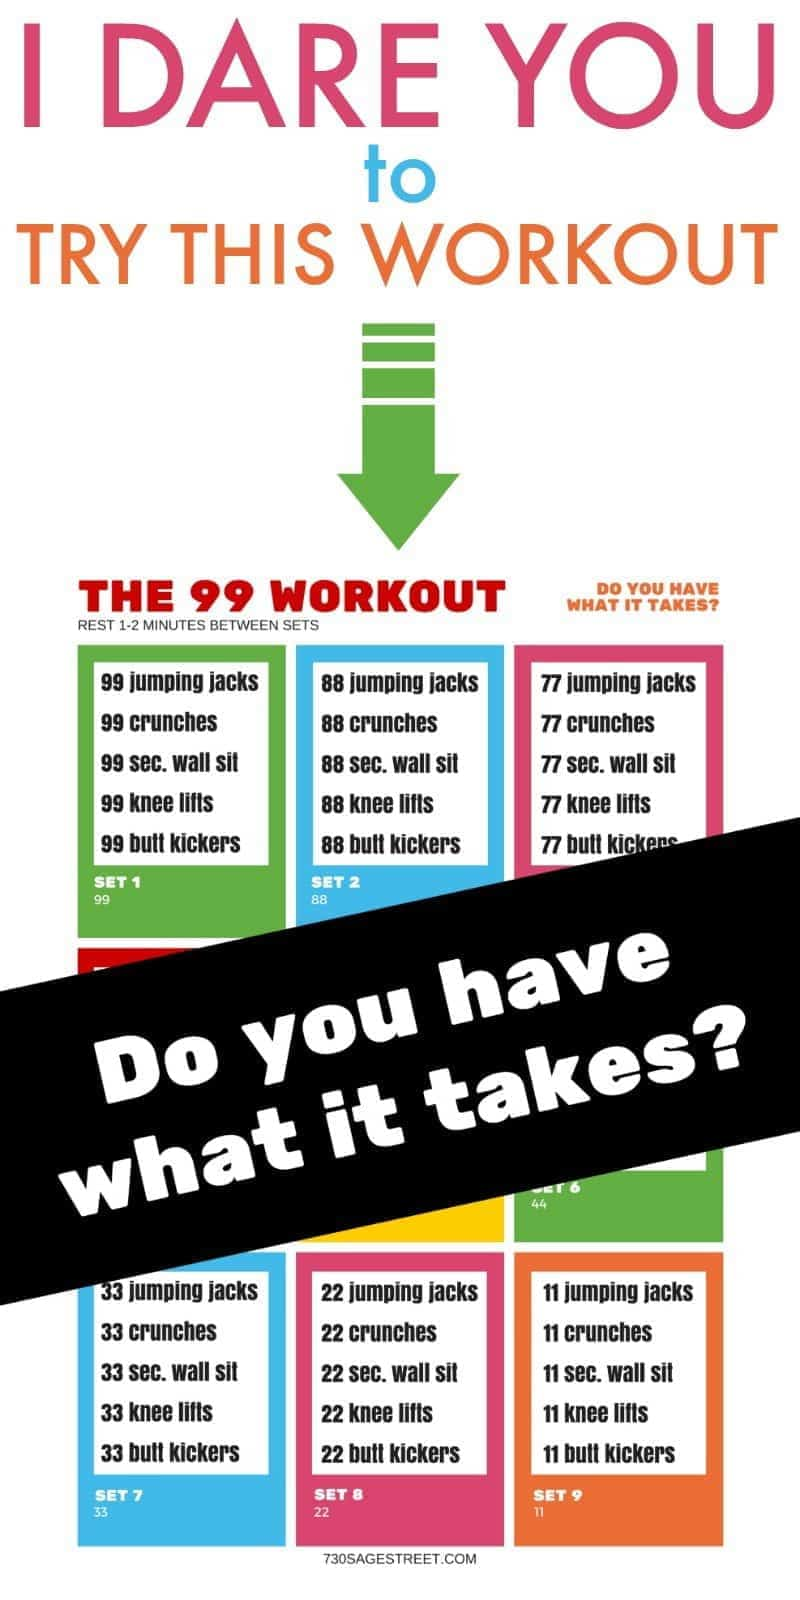 This new and improved version of The 99 Workout is not for the faint of heart. It's an extreme home workout that will help you get in shape fast!